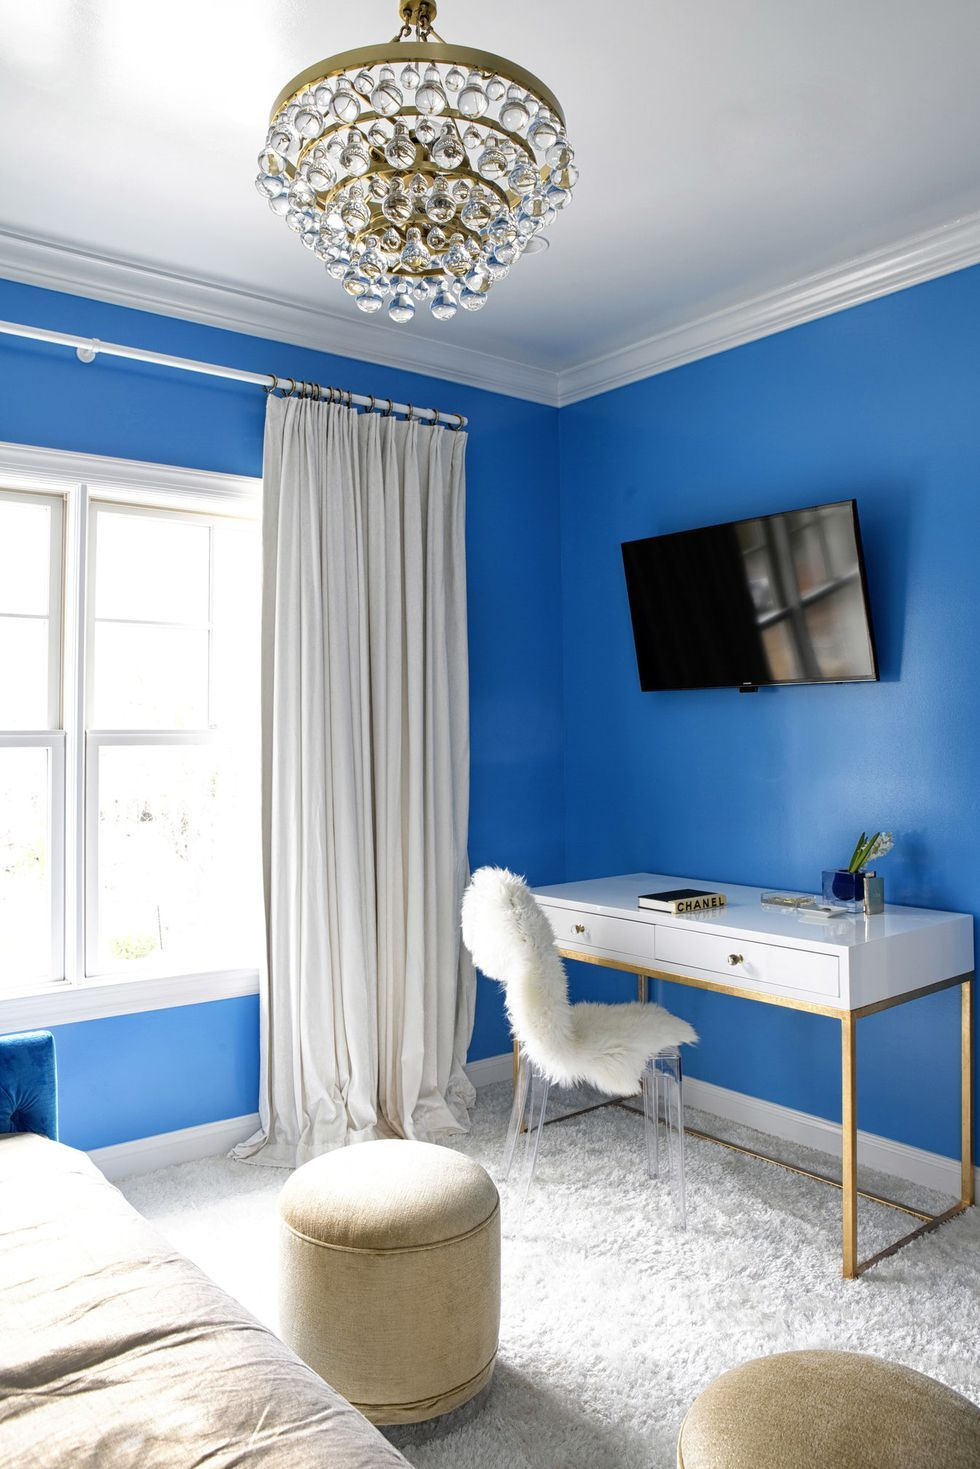 These Gorgeous Rooms Will Tempt You To Experiment With Color